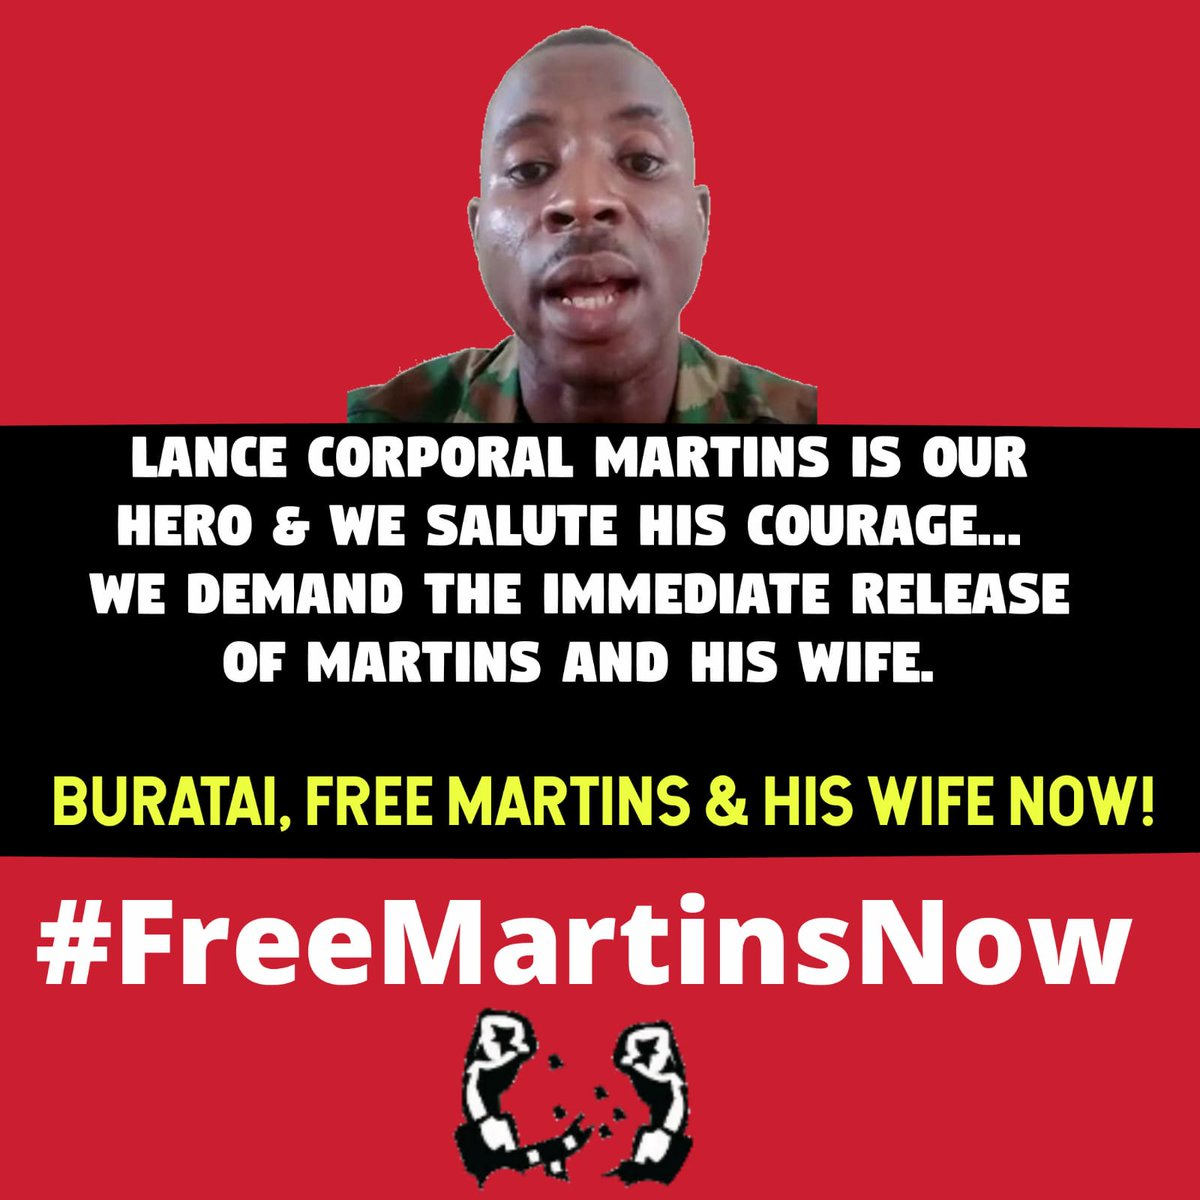 Oppressor(s) Killed Abiola, killed Dele Giwa, Hanged Saro-Wiwa, We would never Forget. However the good news is Oppressed people cannot remain oppressed forever, the yearning for freedom eventually manifest itself ~ Martin Luther King JR.   #FreeMartinsNow #RevolutionNow ✊ https://t.co/3jborIeUNe